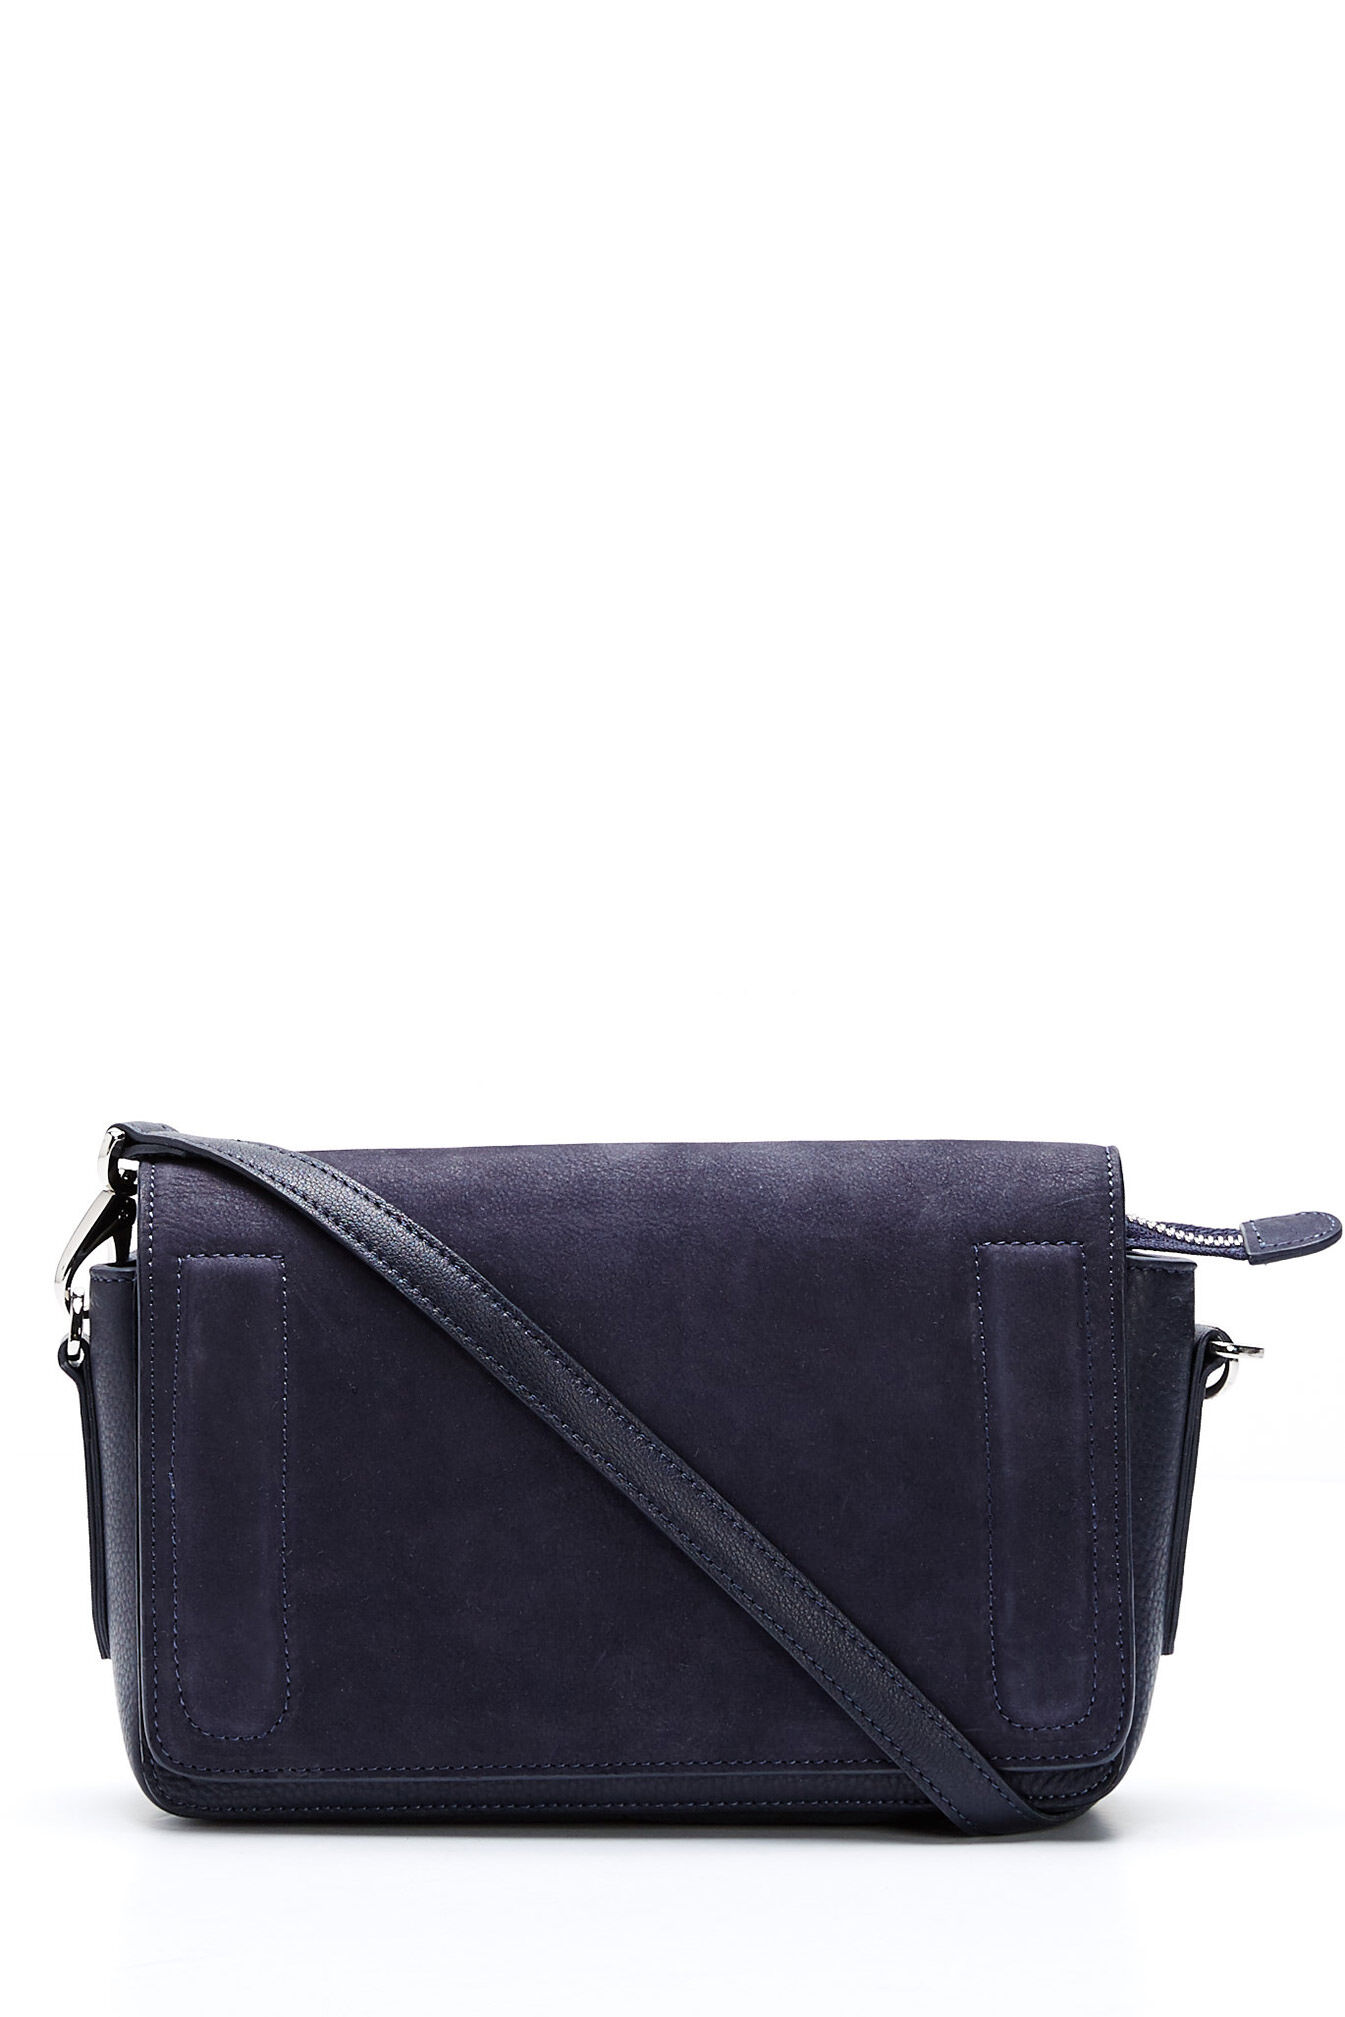 saba female james cross body baginkonesize